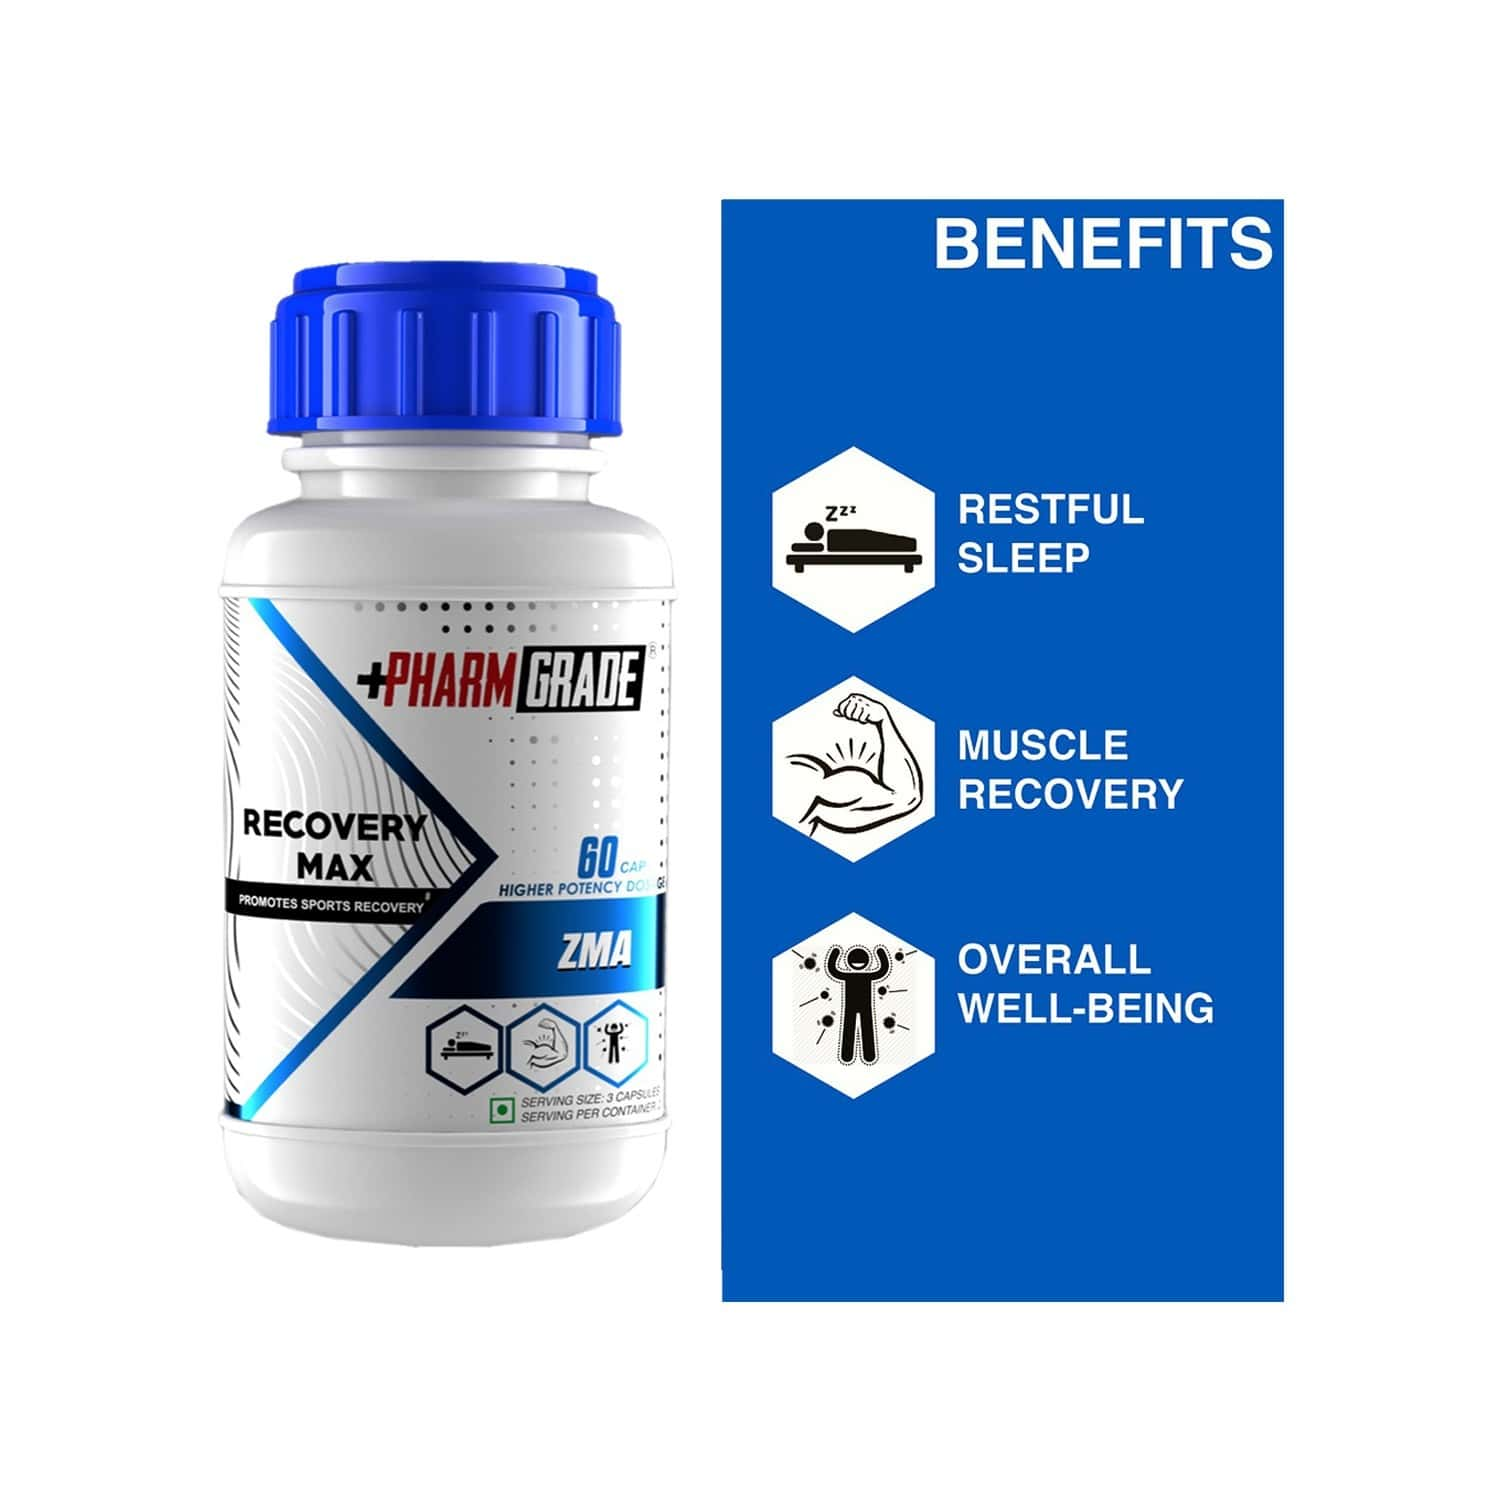 Pharmgrade Recovery Max Zma With Magnesium, Zinc & Vitamin B6 For Immune Support, Nerves, Muscles - 60 Capsules